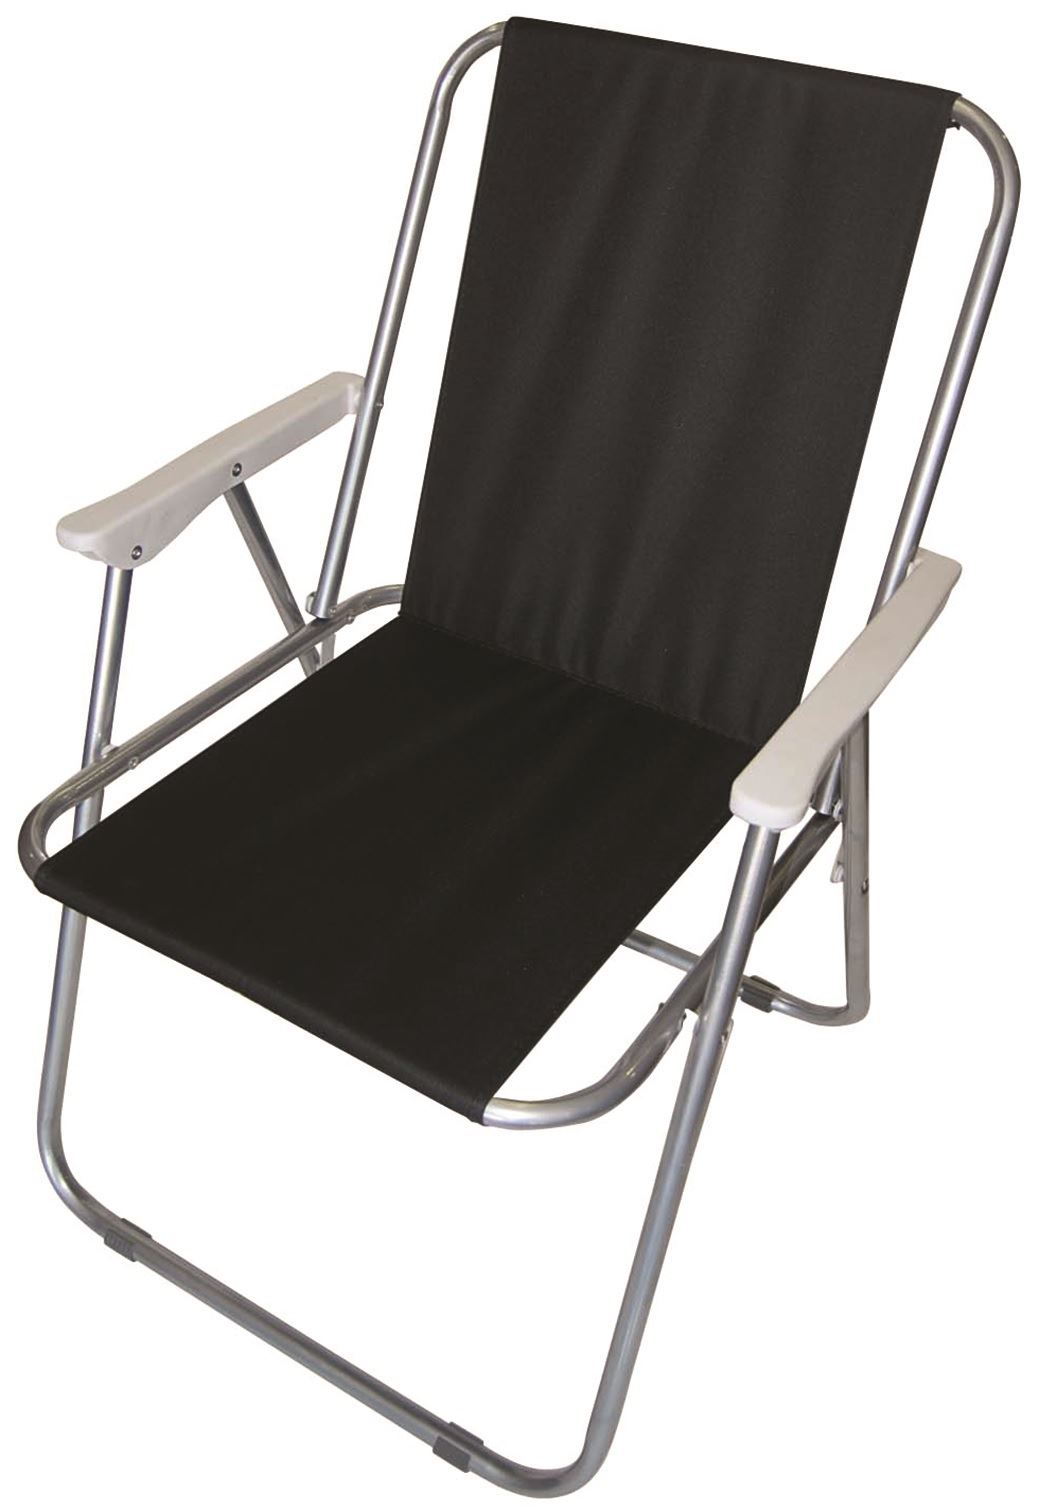 Folding Arm Chair Folding Camping Arm Chair Black Garden Deck Picnic Party